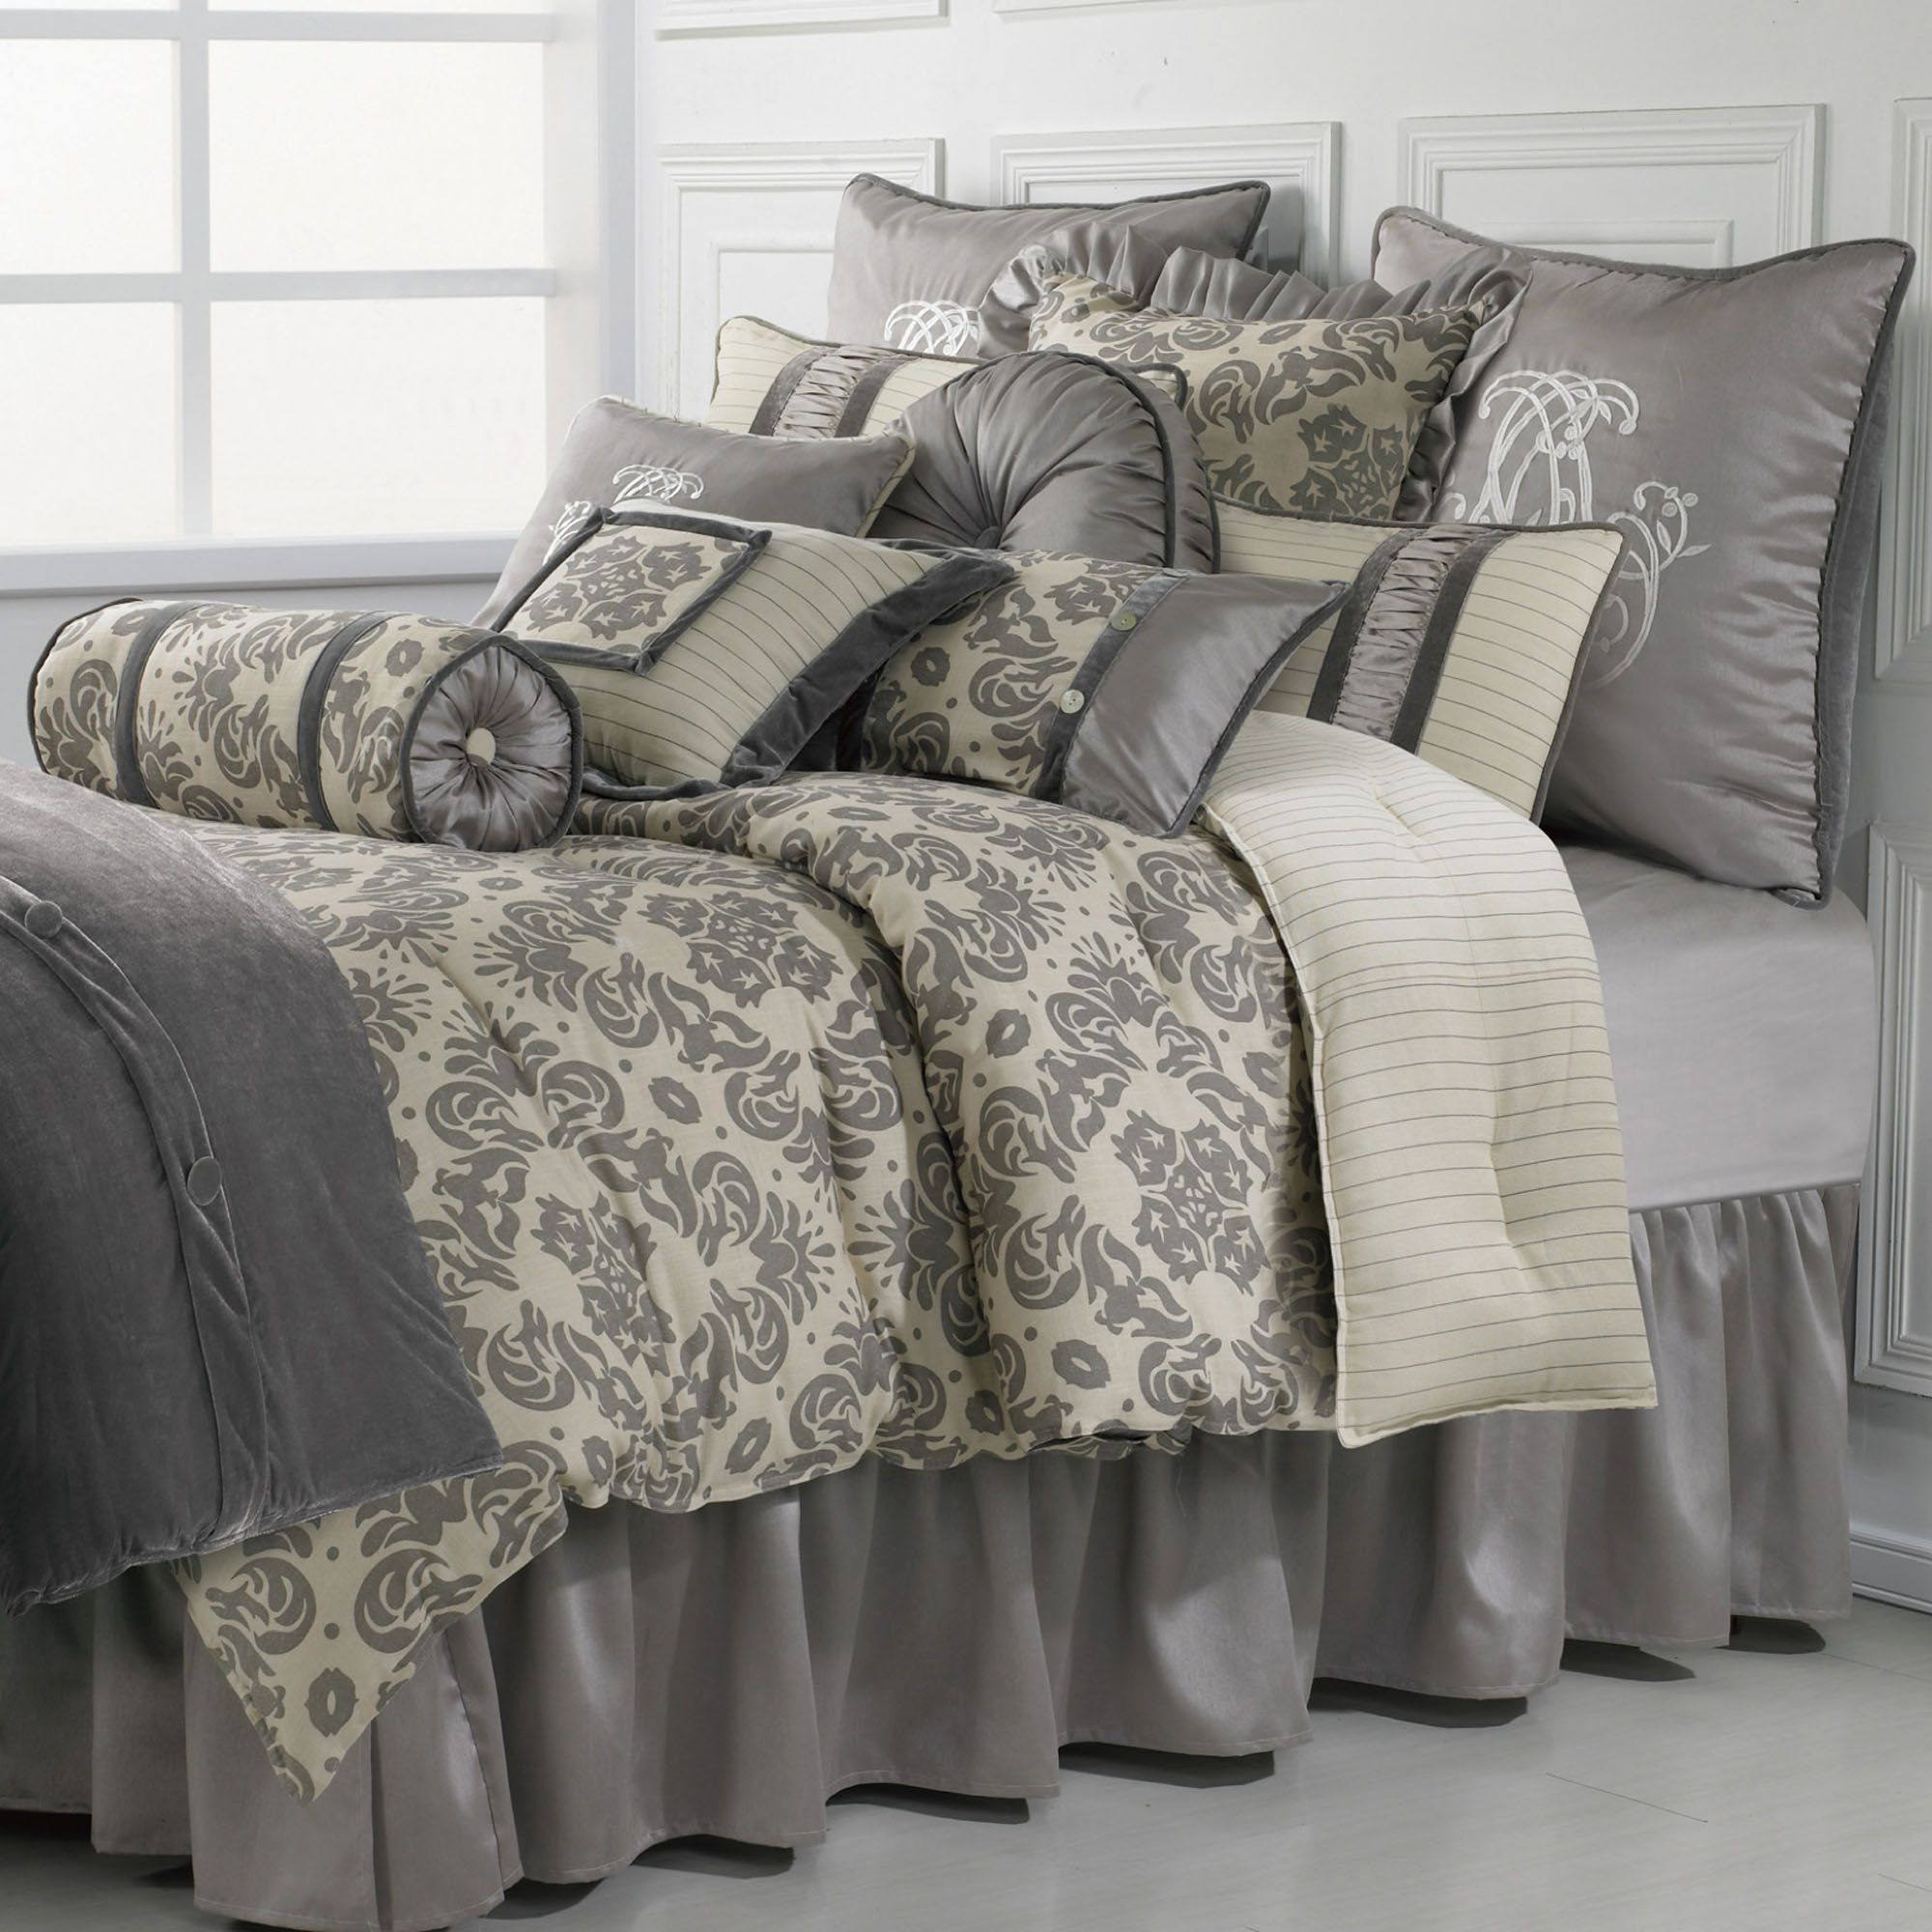 bedding taupe size park bed cal bag amazon set in donovan jacquard soft madison pattern burgundy ultra sets king cream pieces dp a comforter com